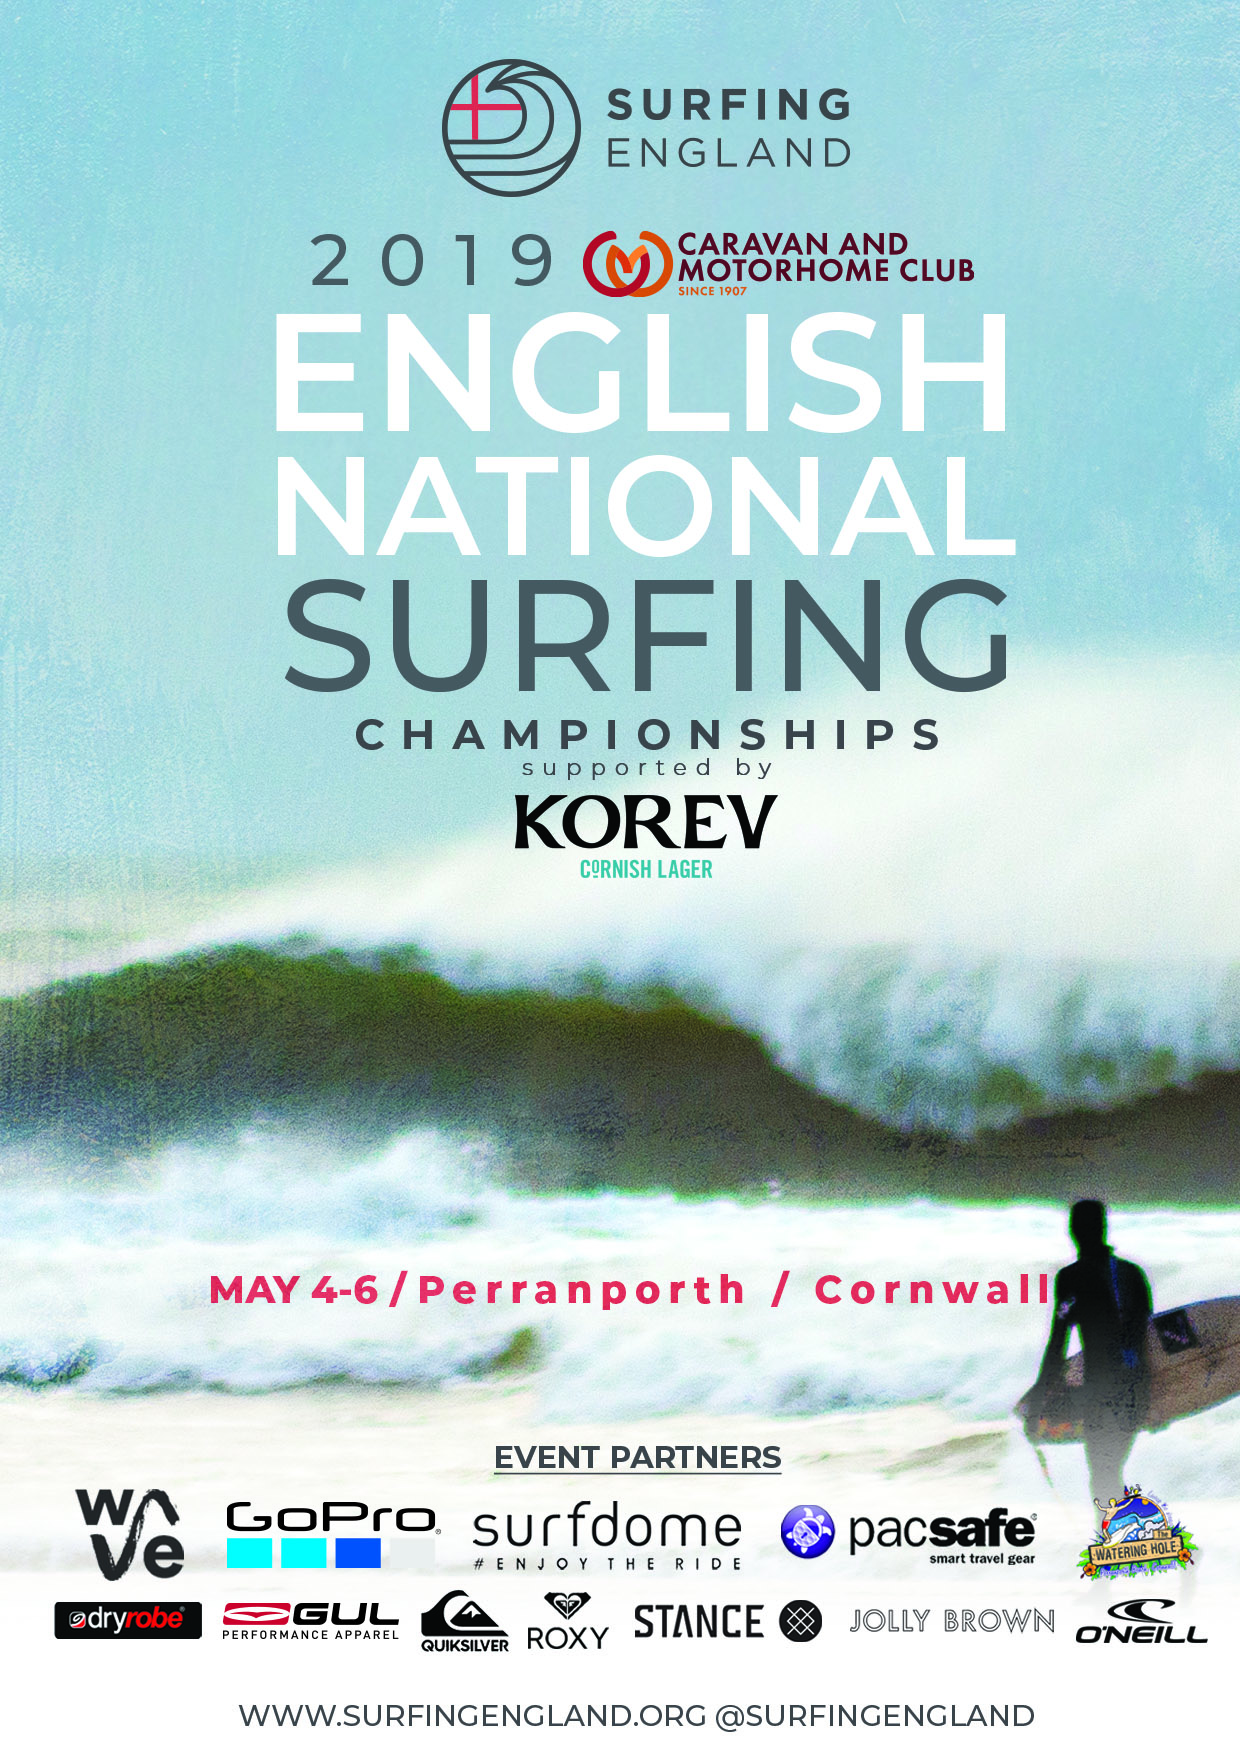 2019 english national surfing championships